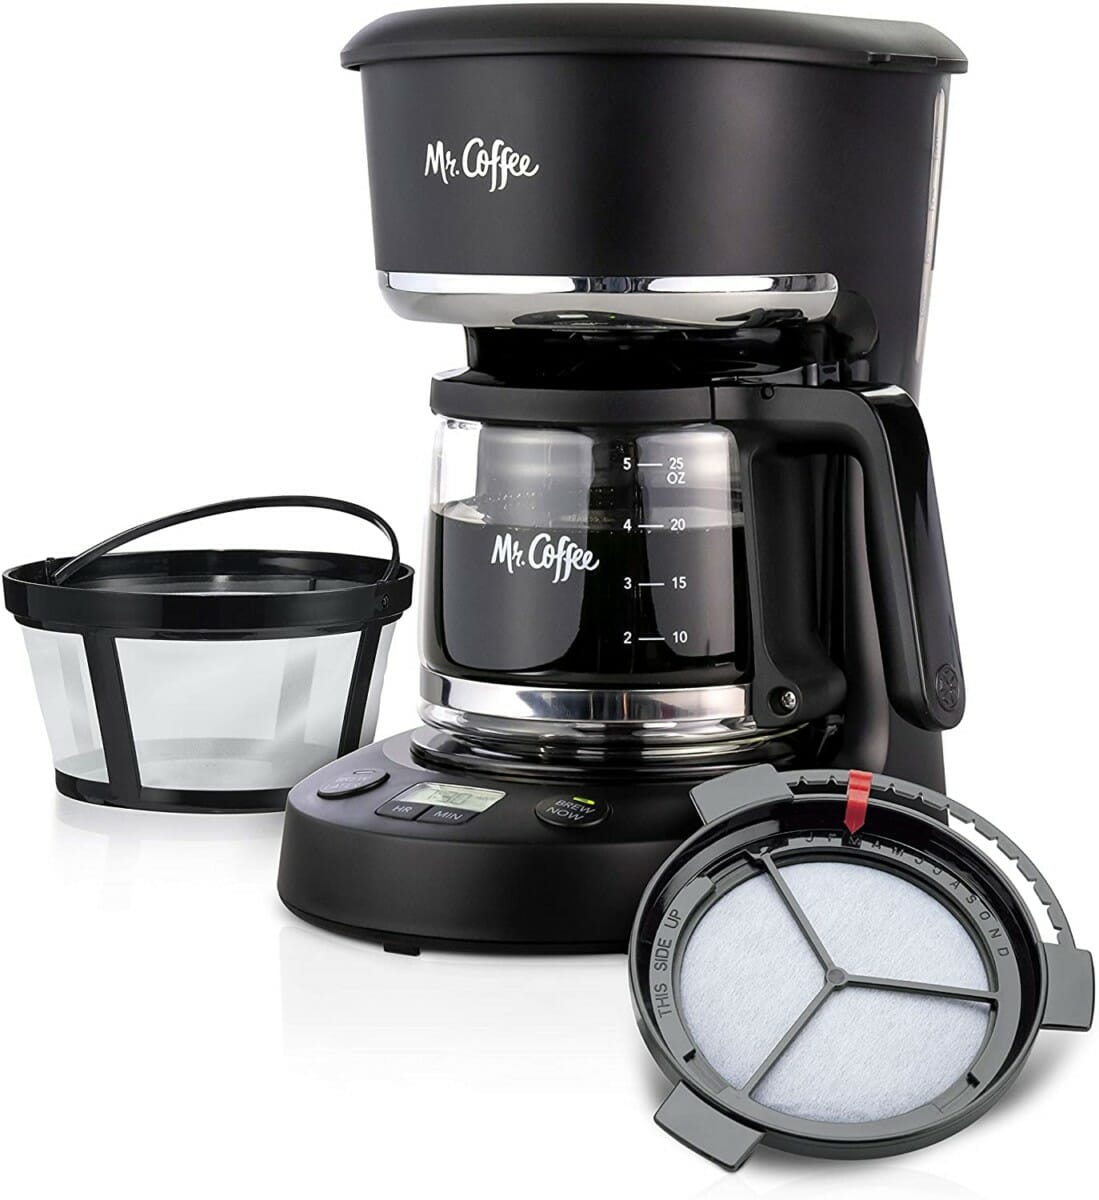 Mr. Coffee Five Cup Programmable